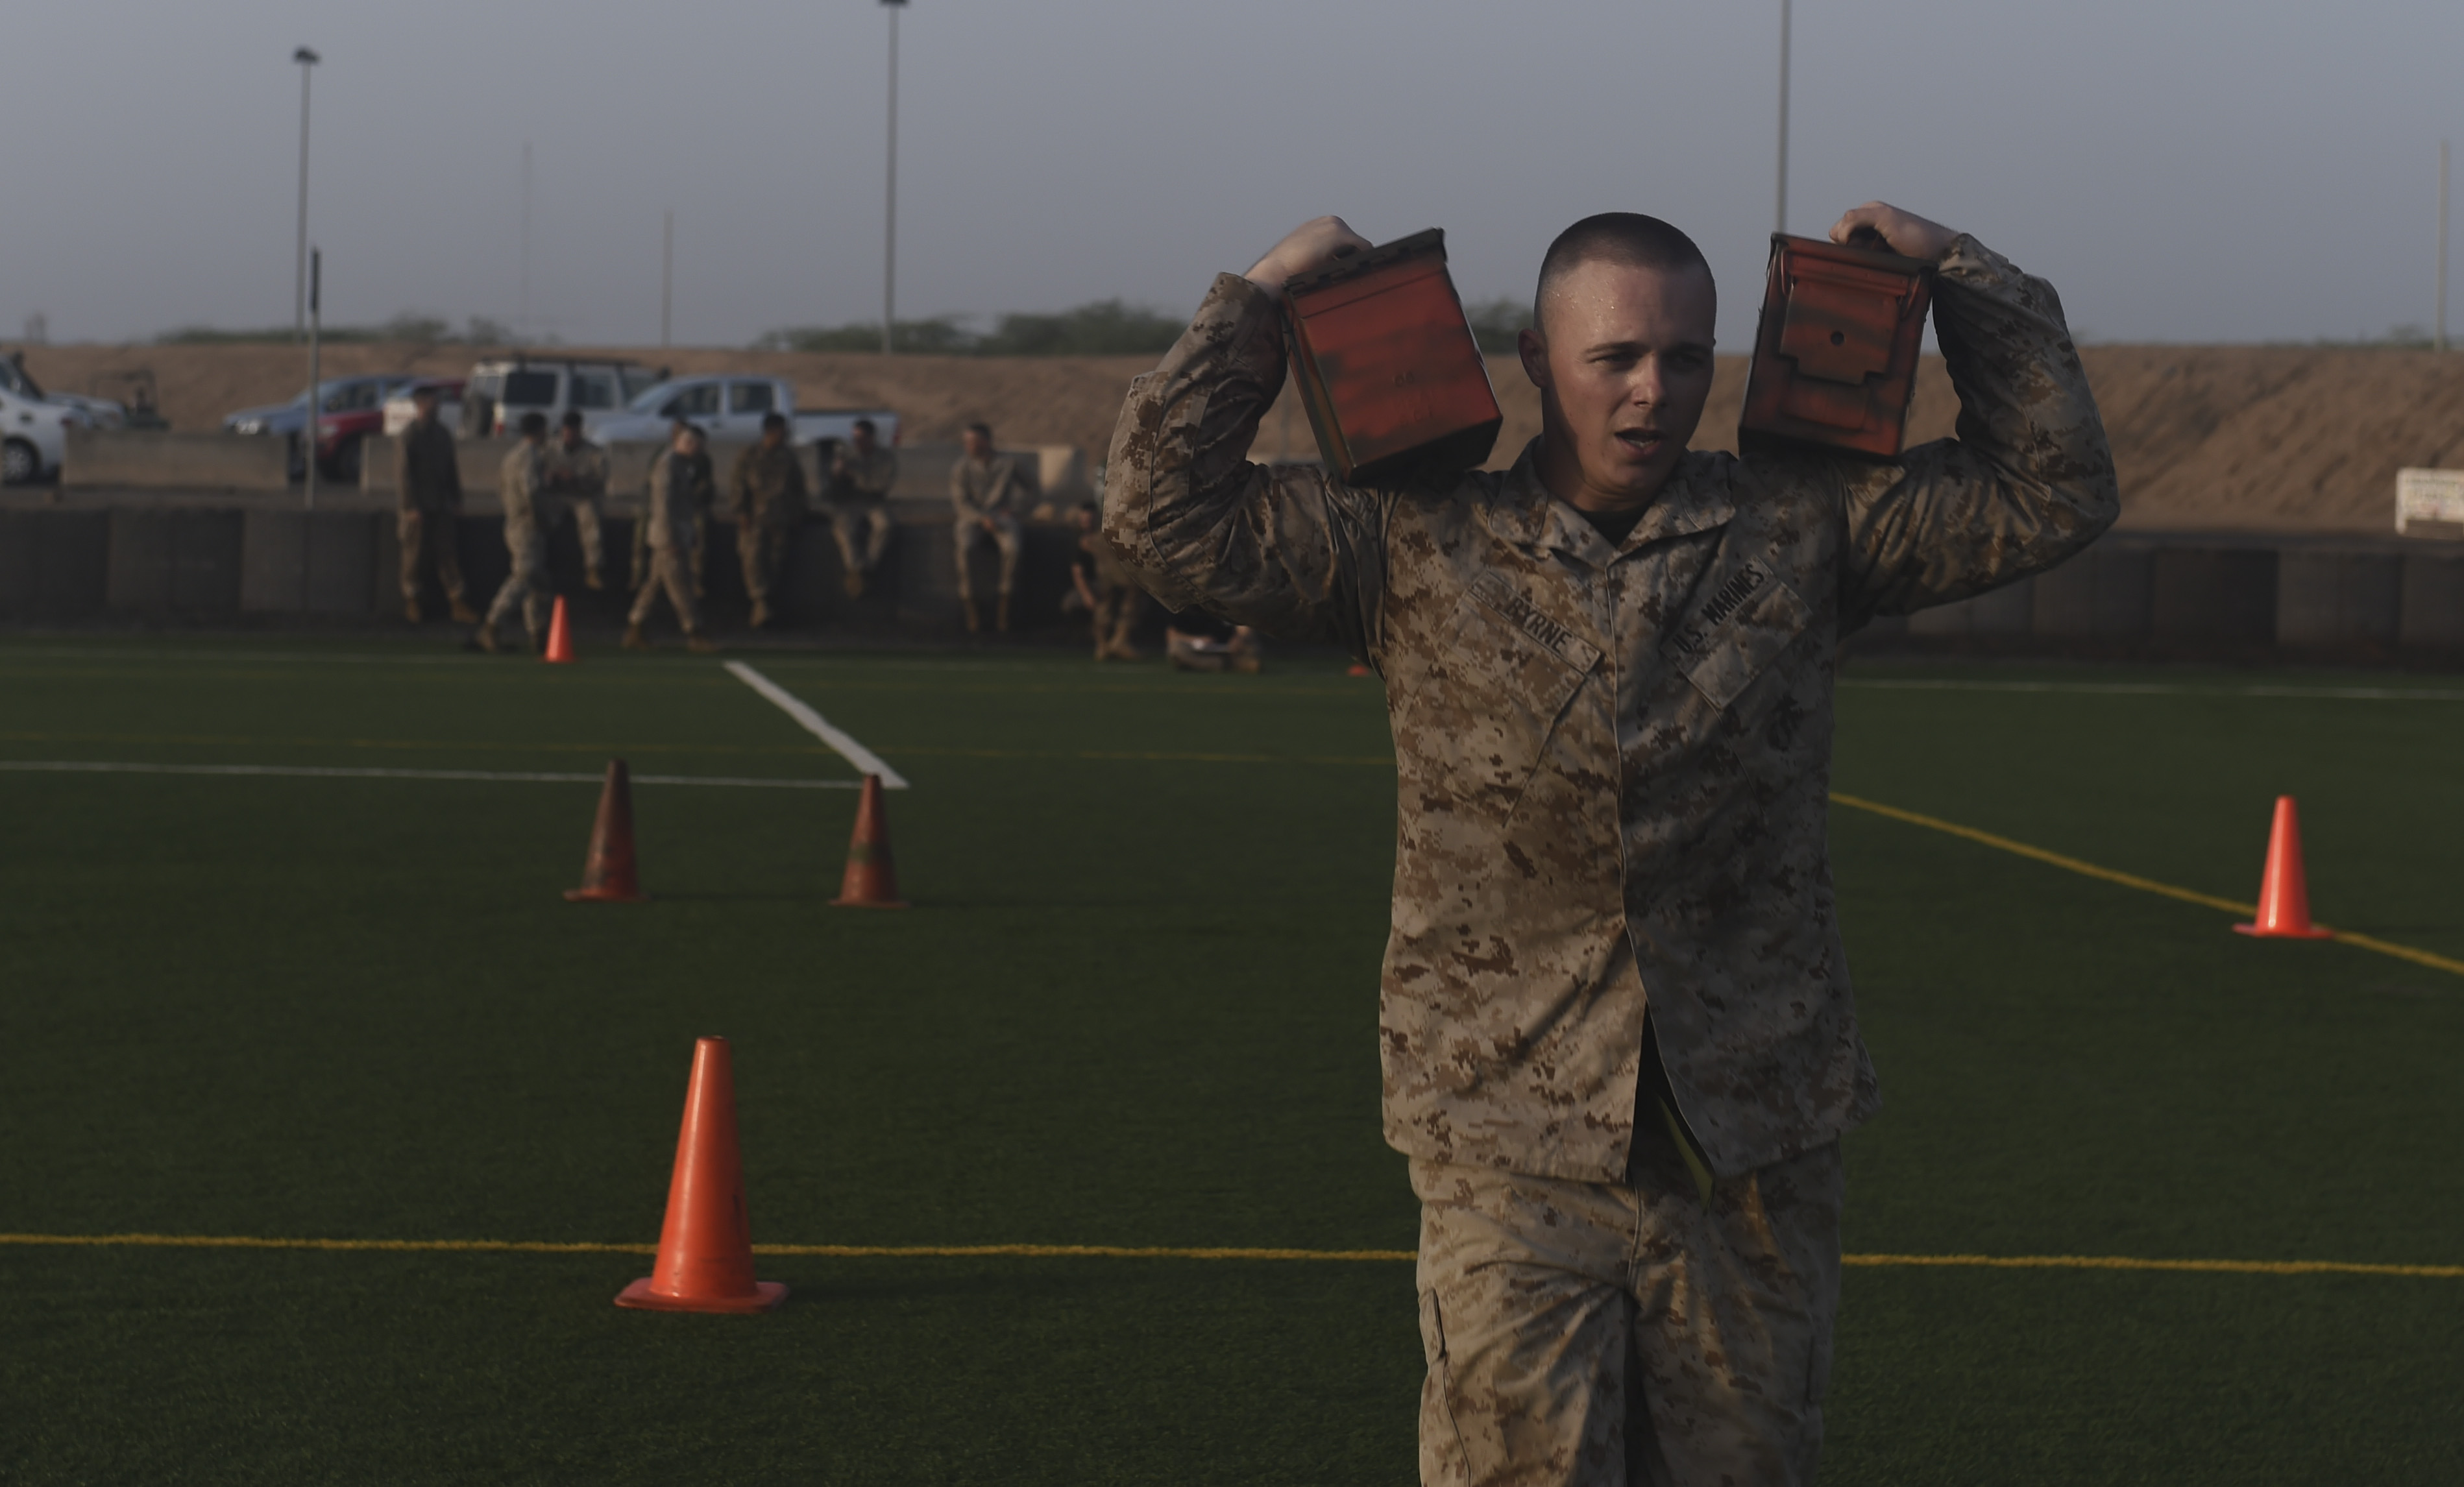 U.S. Marine Corps Cpl Richard Byrne, assigned to Combined Joint Task Force-Horn of Africa, carries ammo cans during a combat fitness test during the Corporal's Course at Camp Lemonnier, Djibouti, May 31, 2017. The course is a requirement for Marines in the enlisted grade of E-4, but here, all U.S. service members in the ranks of corporal, specialist, senior airman or petty officer third class were allowed to participate. (U.S. Air Force photo by Staff Sgt. Eboni Prince)